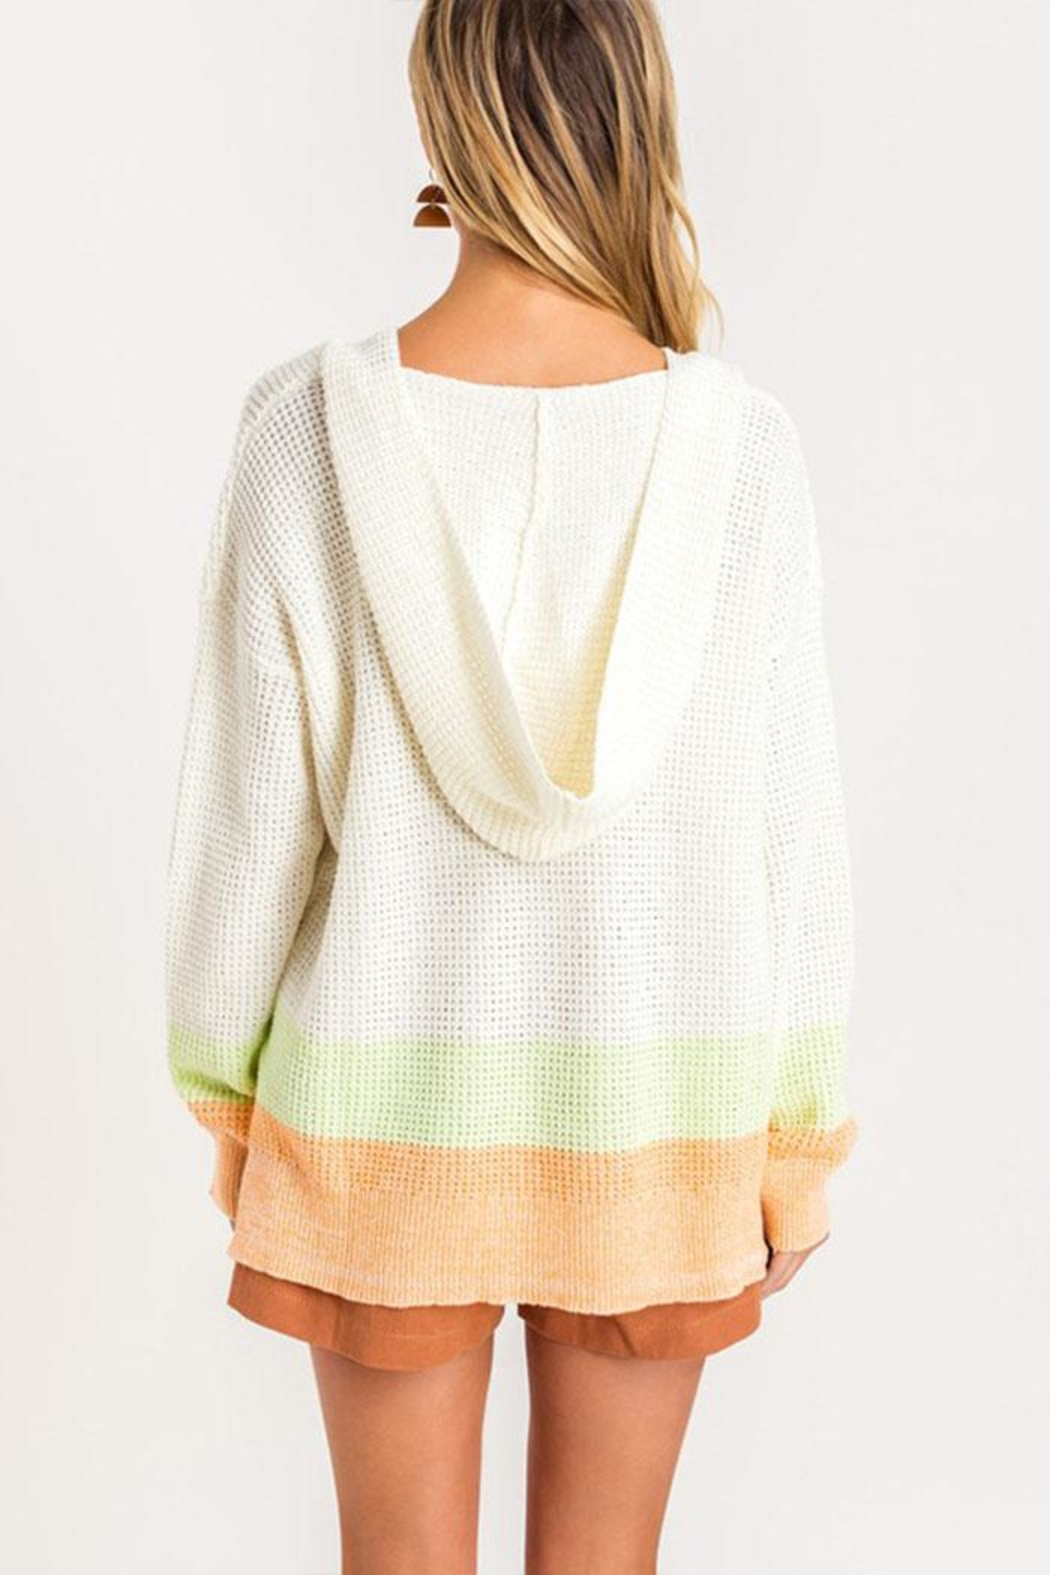 Lush Clothing  Colorblock Hooded Sweater - Front Full Image